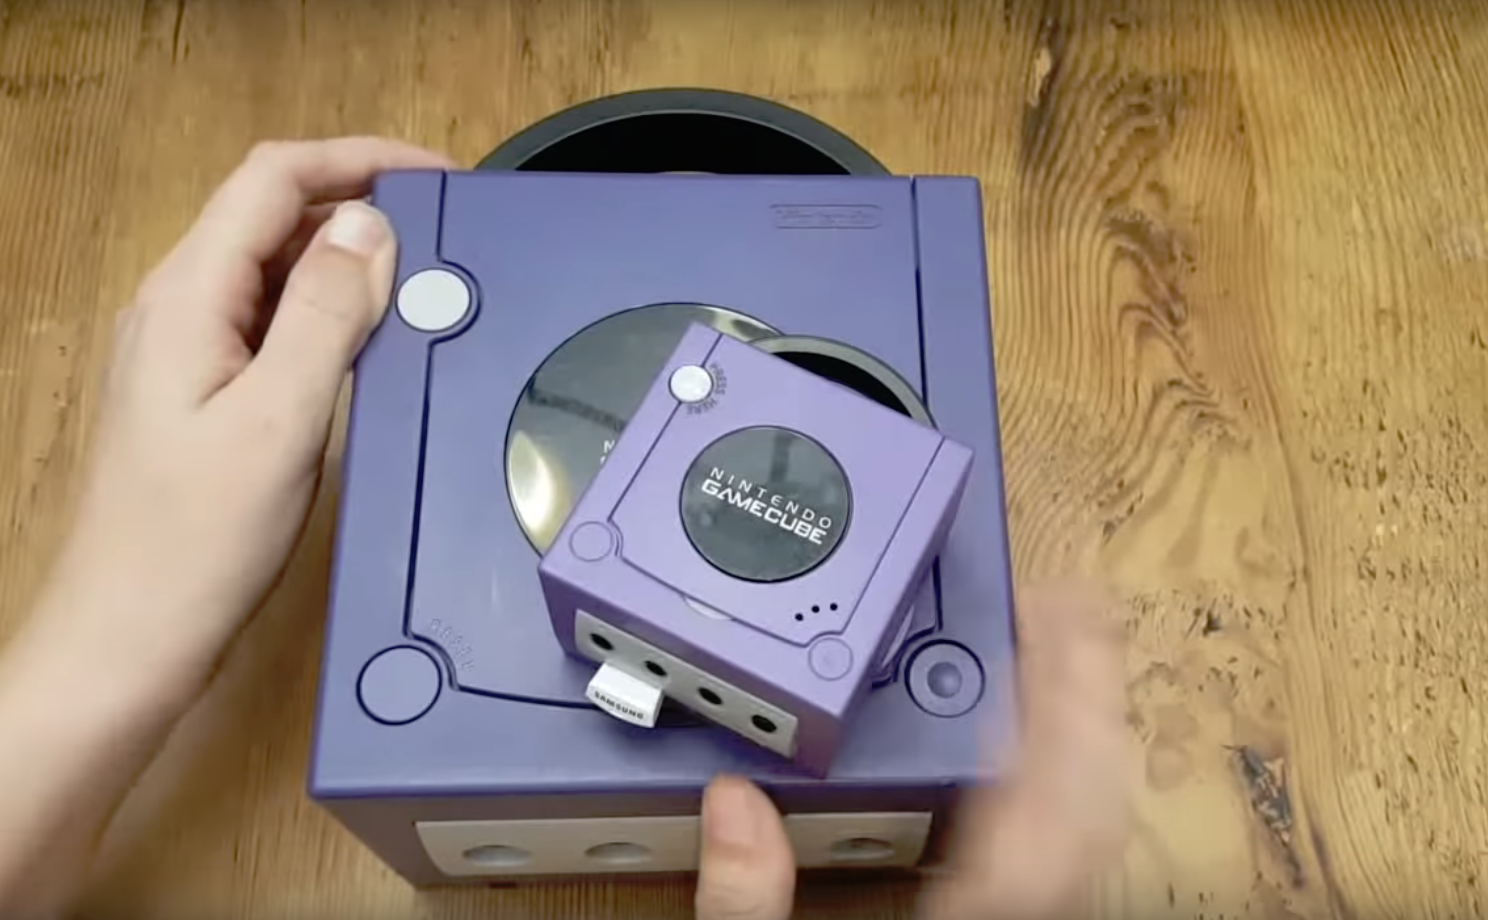 YouTuber's Tiny GameCube Is A Heartbreaking Look At What Could Have Been